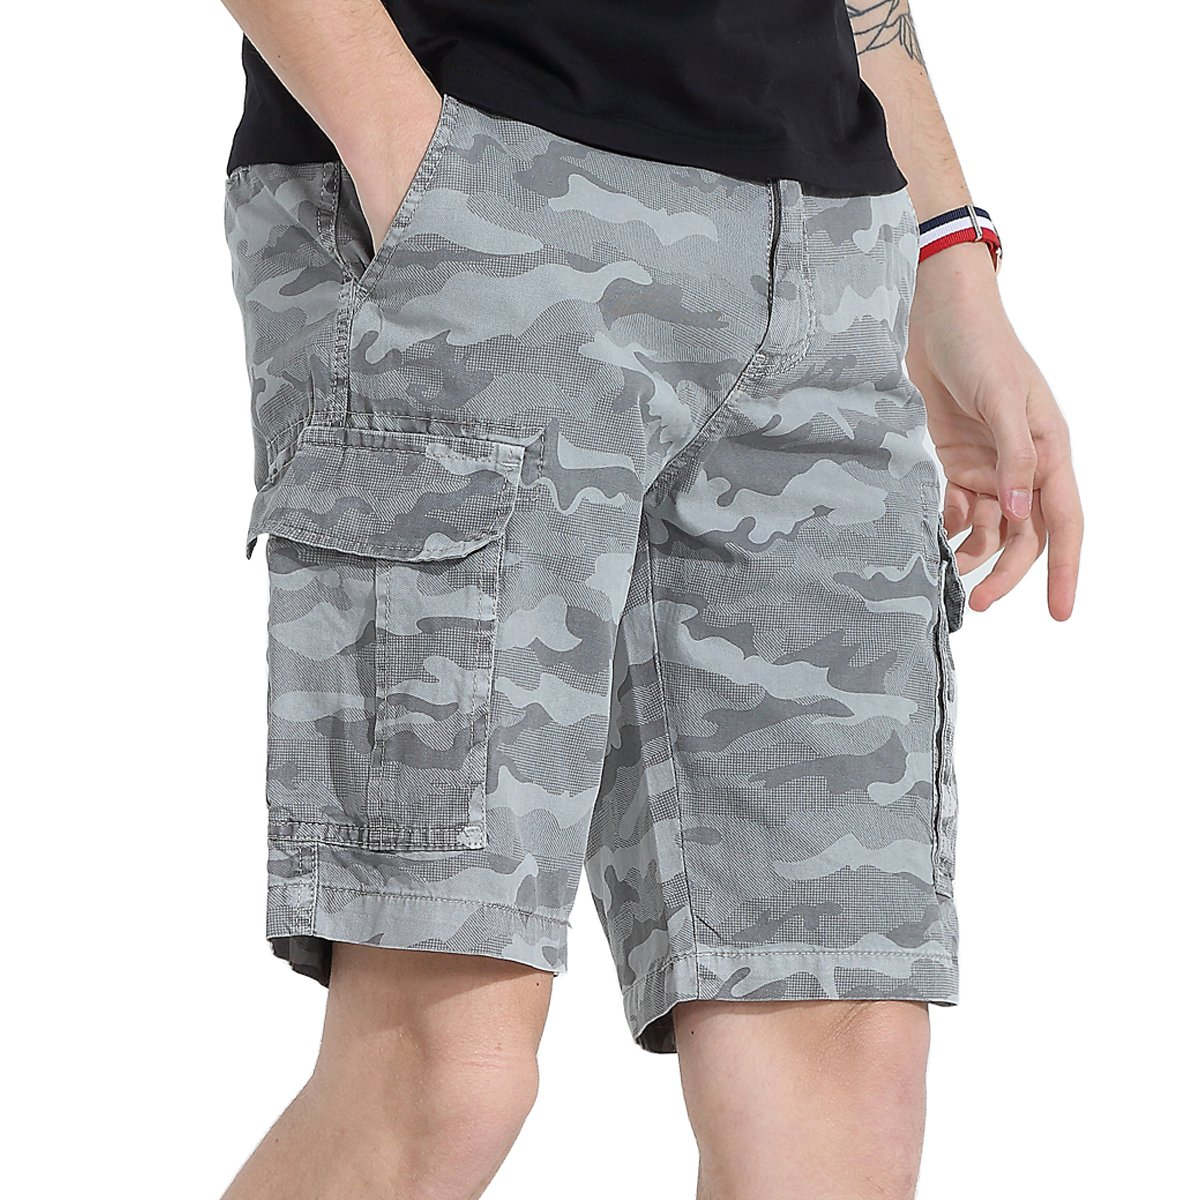 Men's Camo Cargo Shorts Cotton Casual Outdoor Beach Work Slim Fit Loose Travel Construction Hiking Military Army Hunting Tactical Ranch Multi Pocket Utility Dungarees Pants (Grey Camouflage 32)